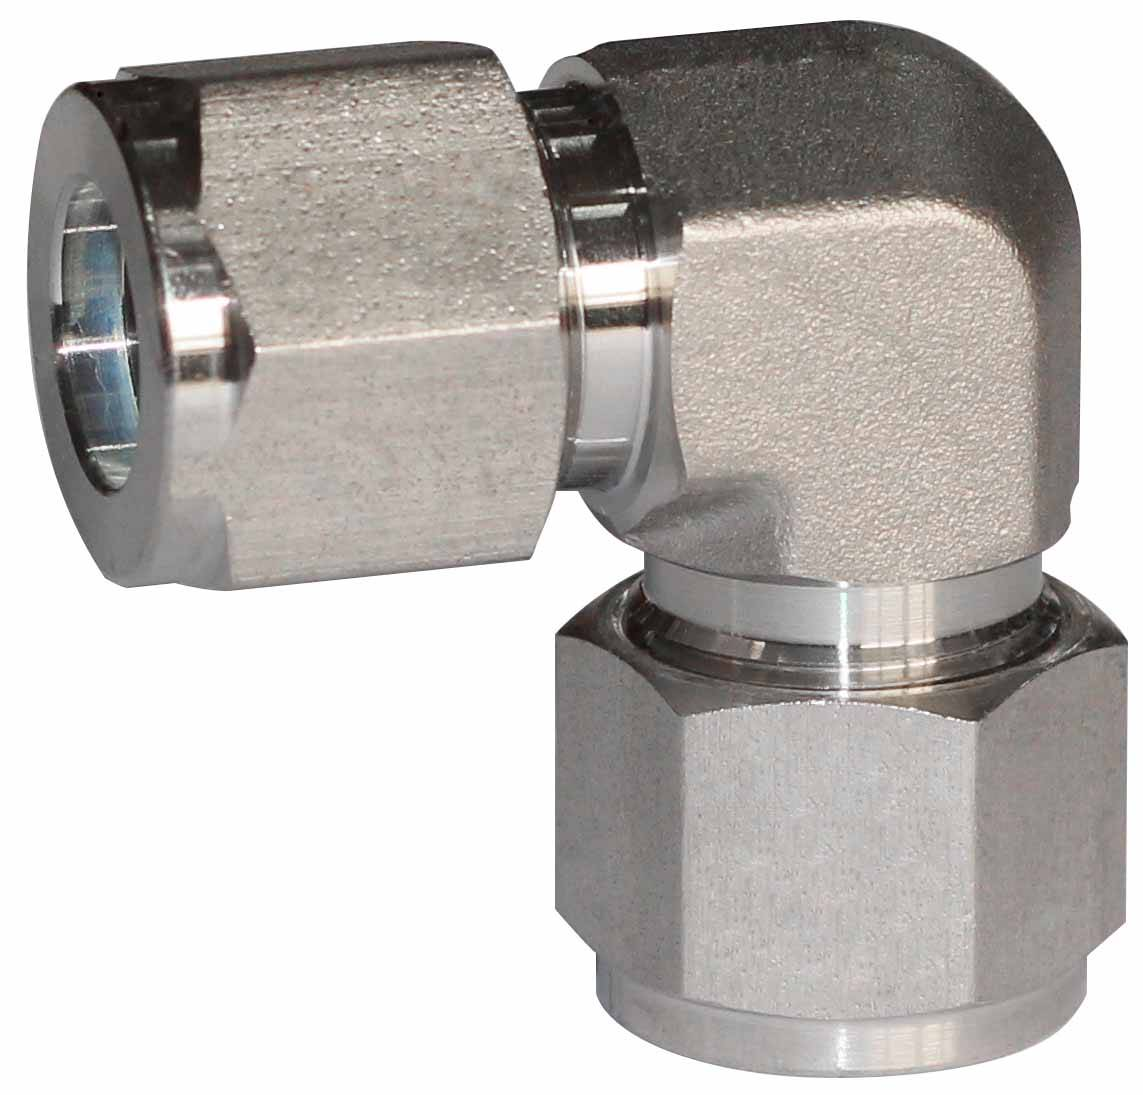 SS316 union elbow,double ferrules,1/2OD,16Mpa